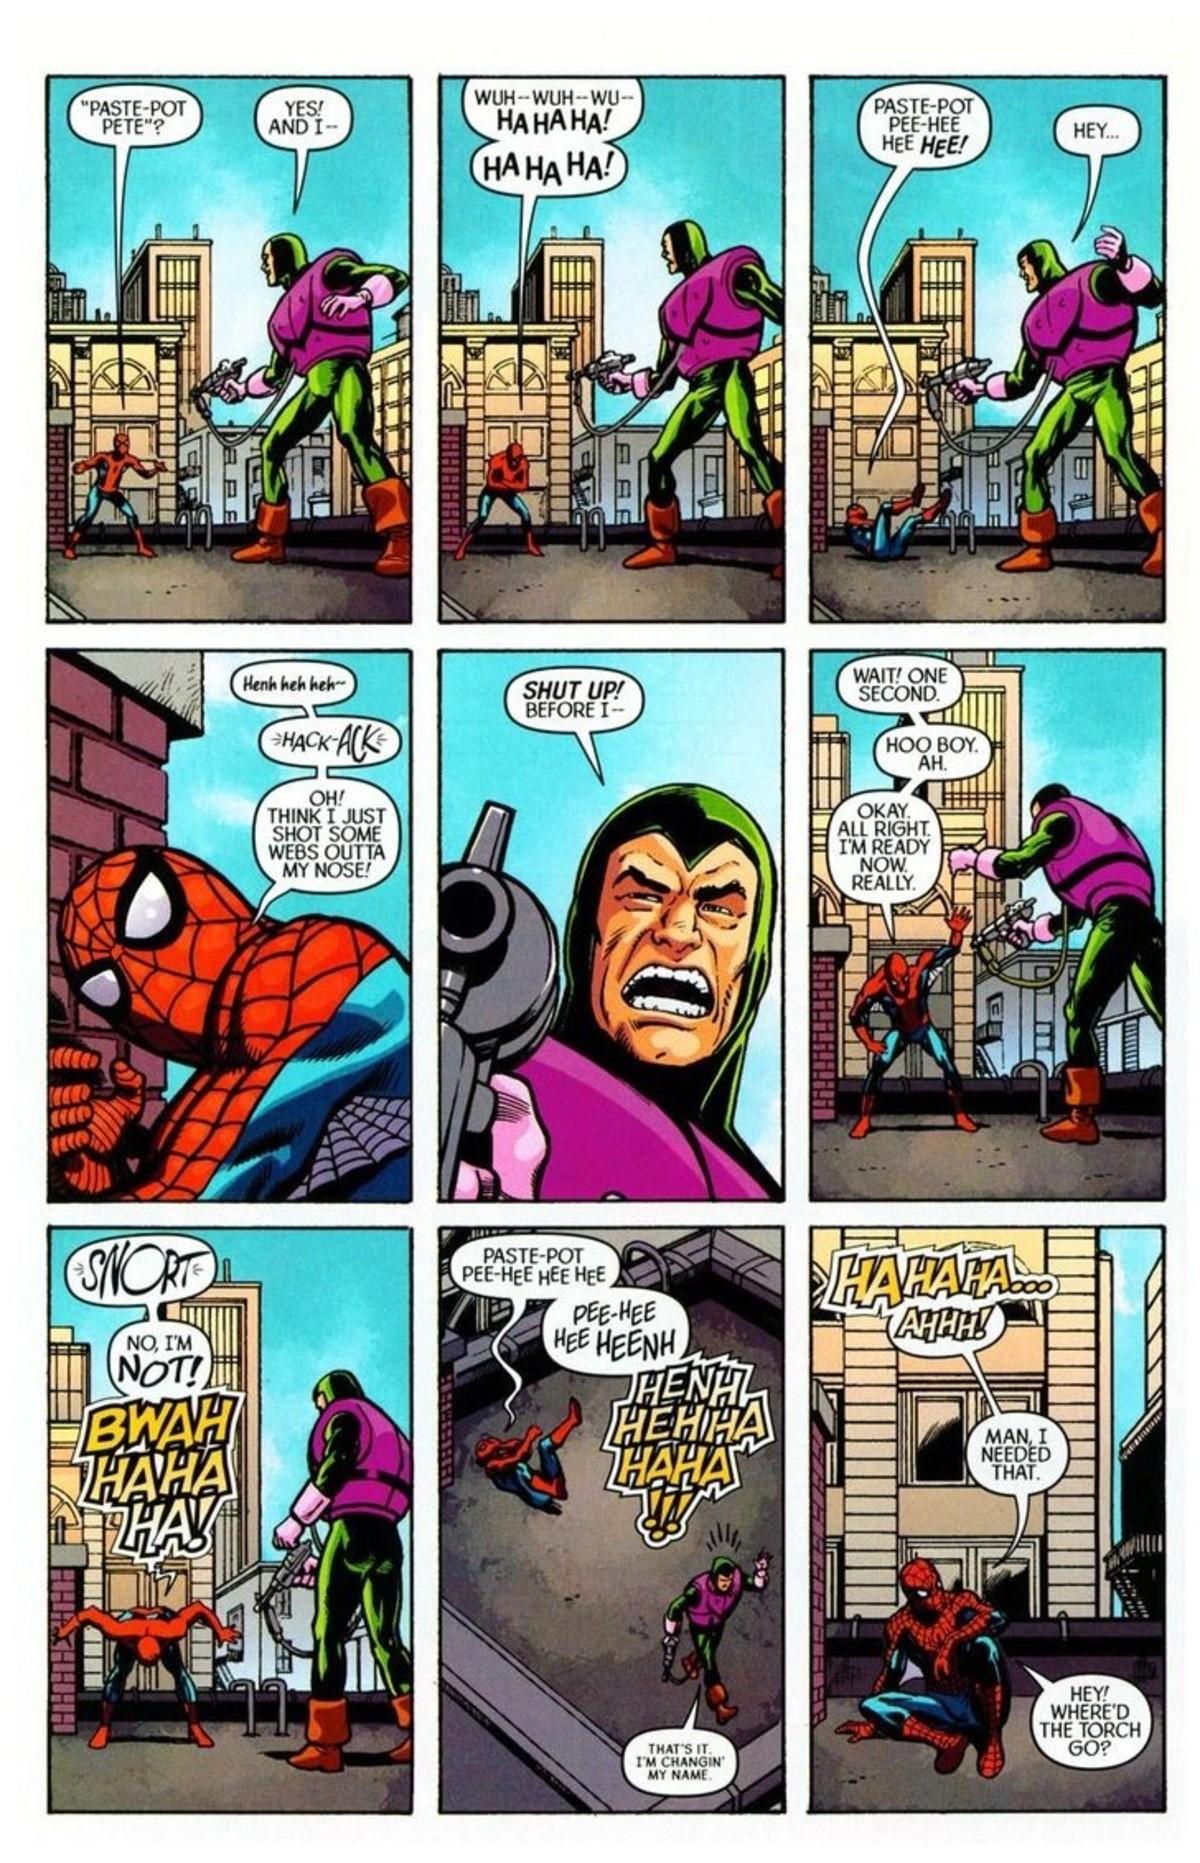 Paste-Pot Pete. .. >That time spiderman defeated a bad guy by laughing at him